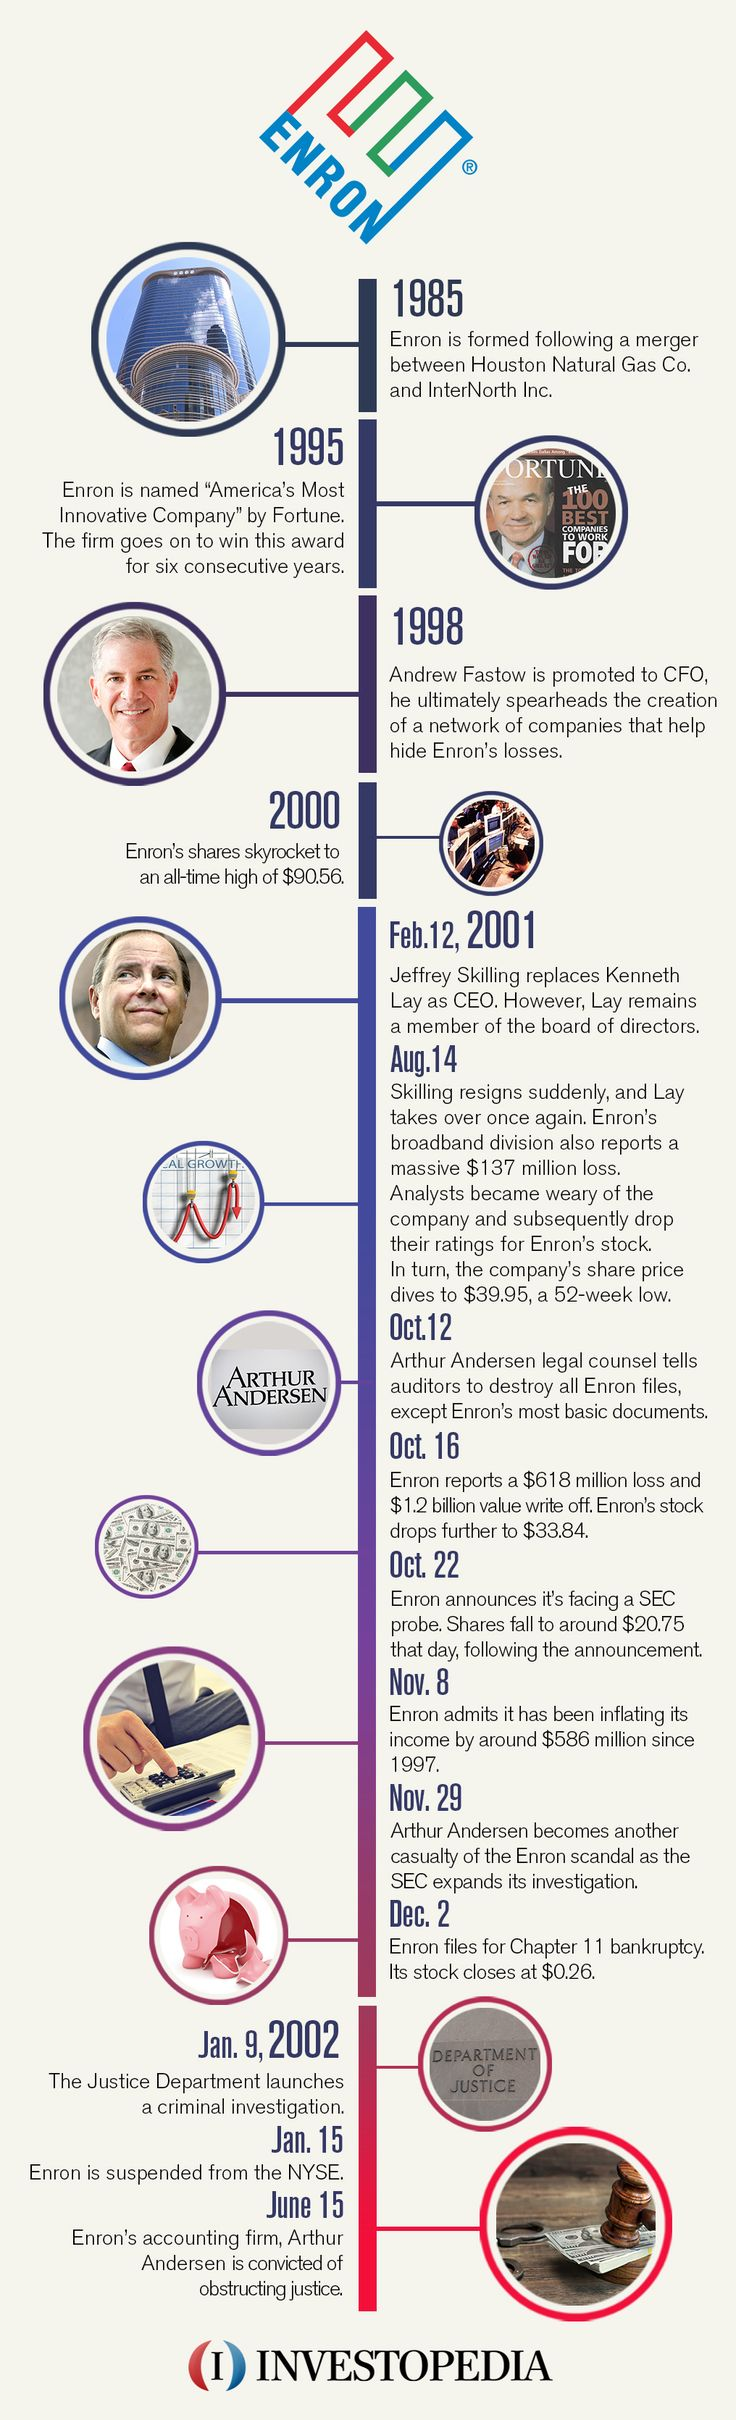 Today is the 15th anniversary of the former oil giant's bankruptcy filing.